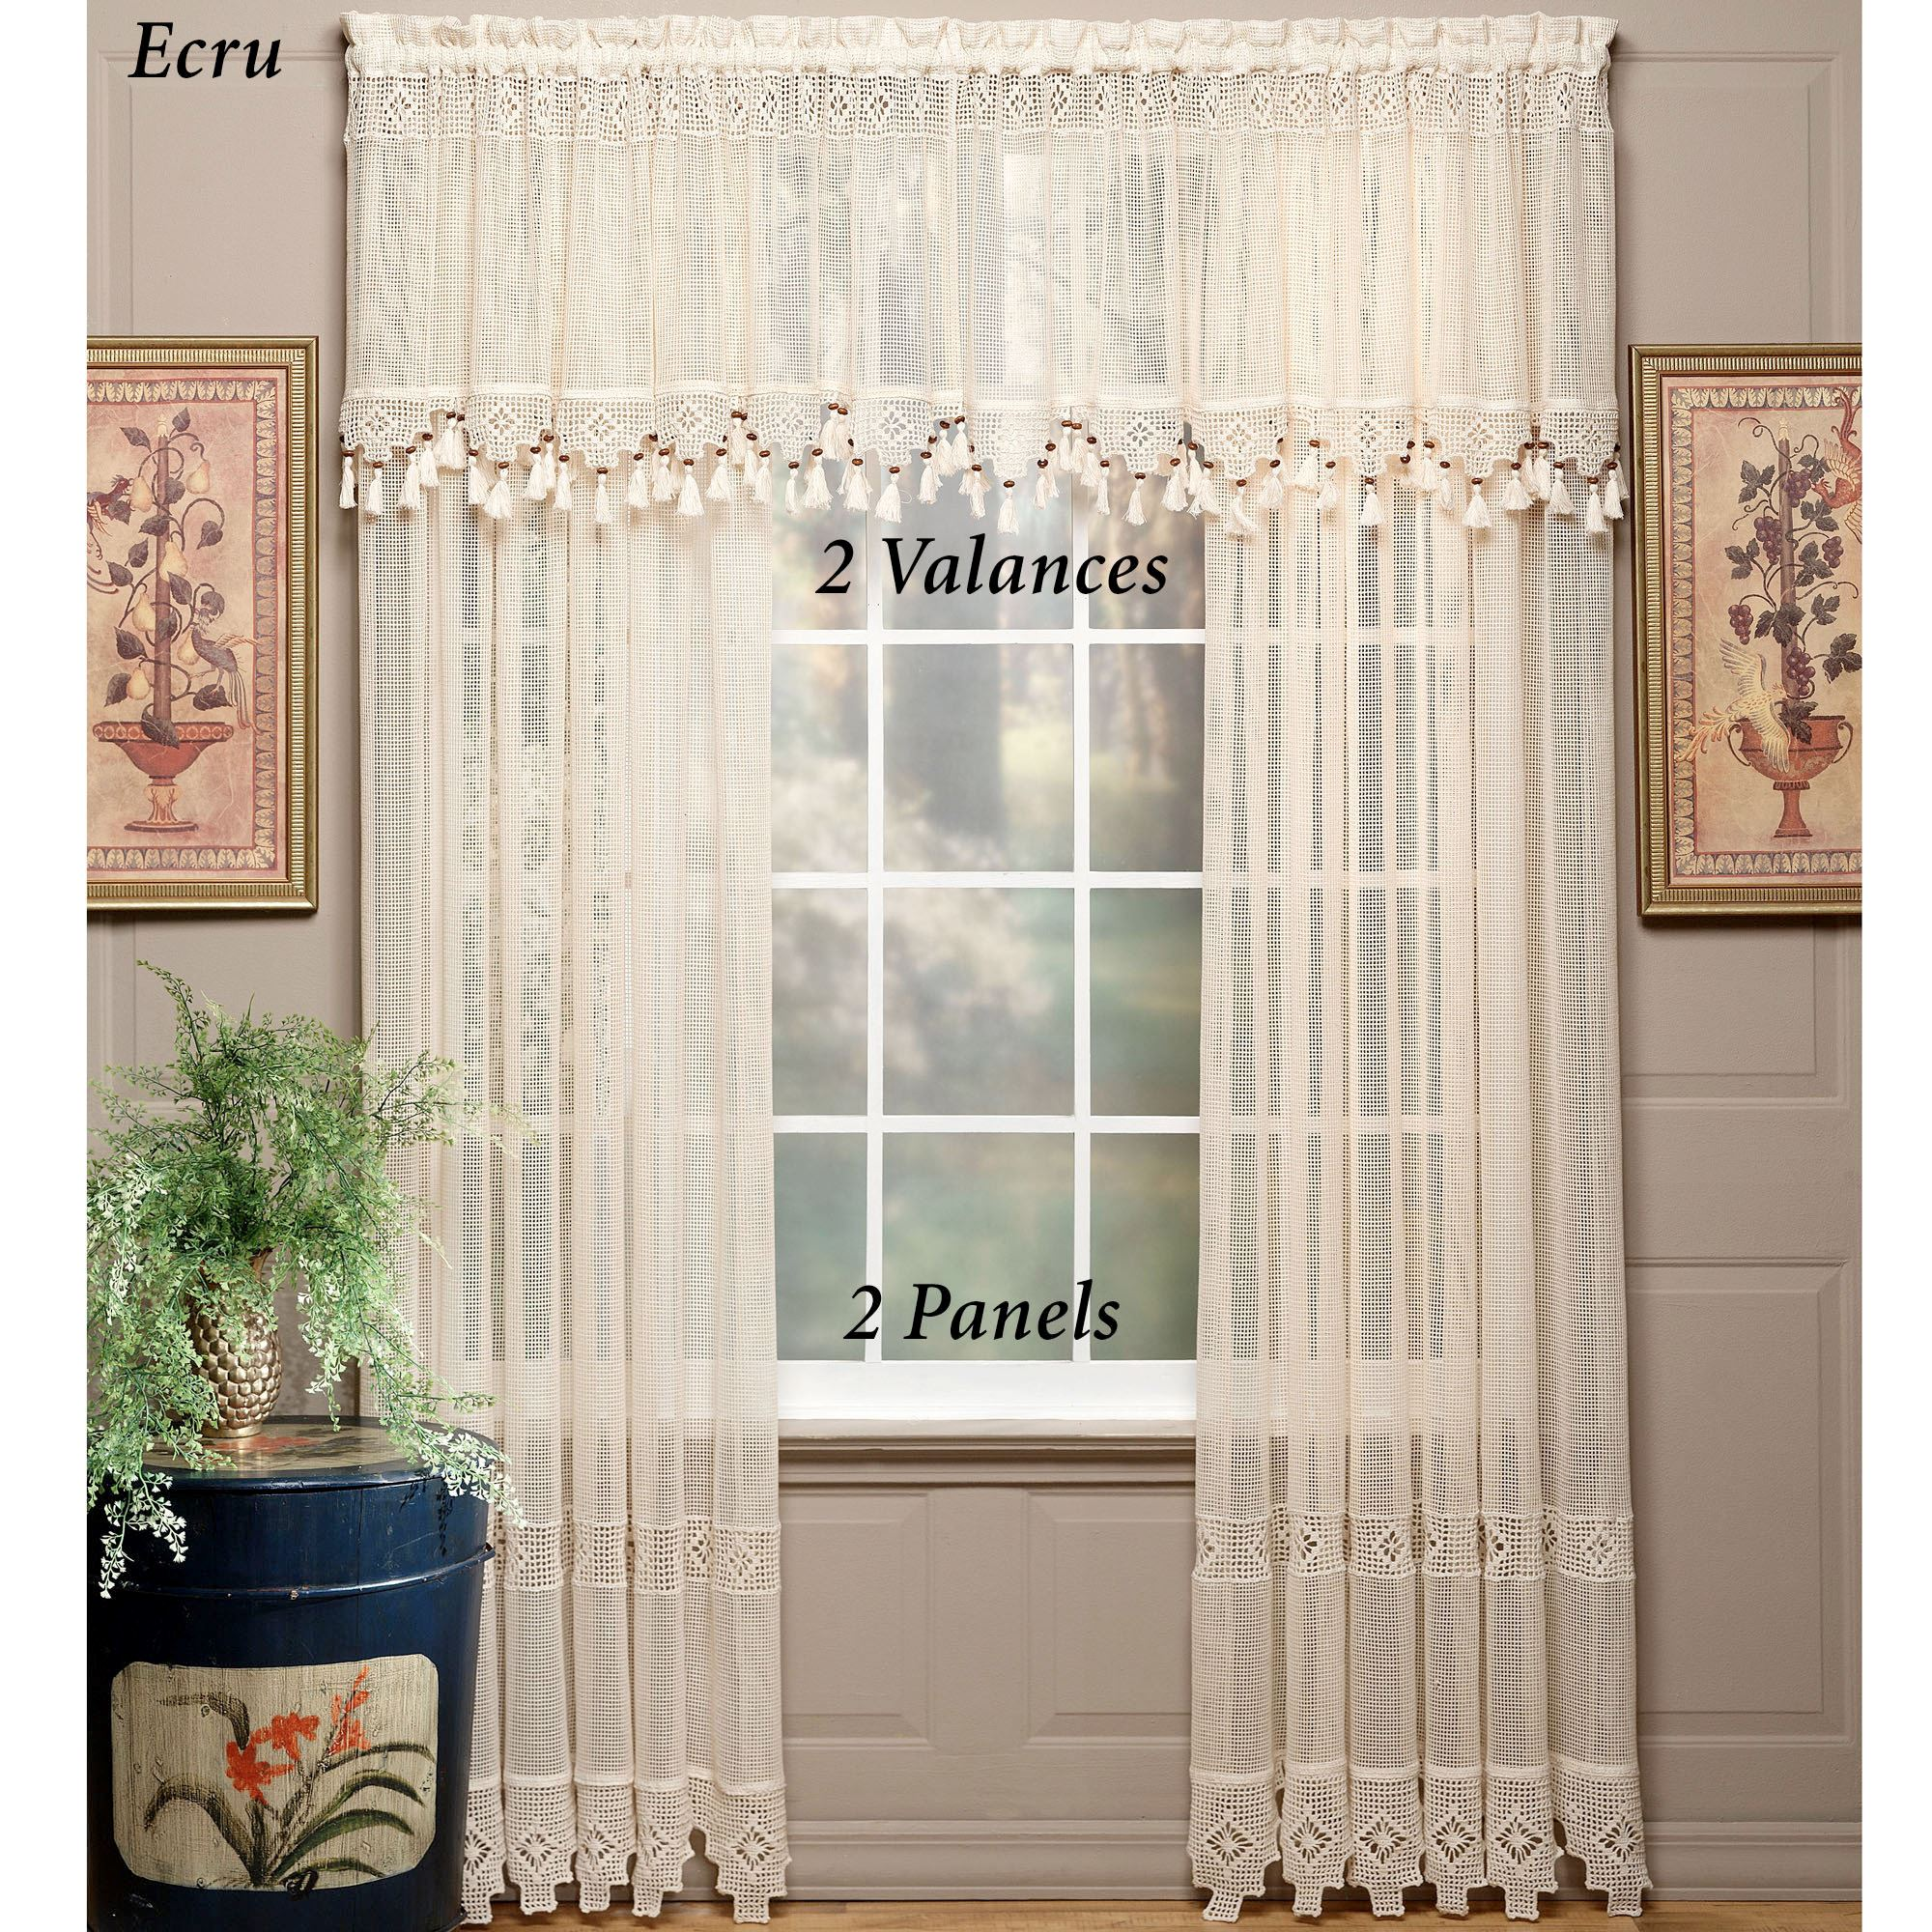 patterns for crochet curtains guide curtain knitted cool